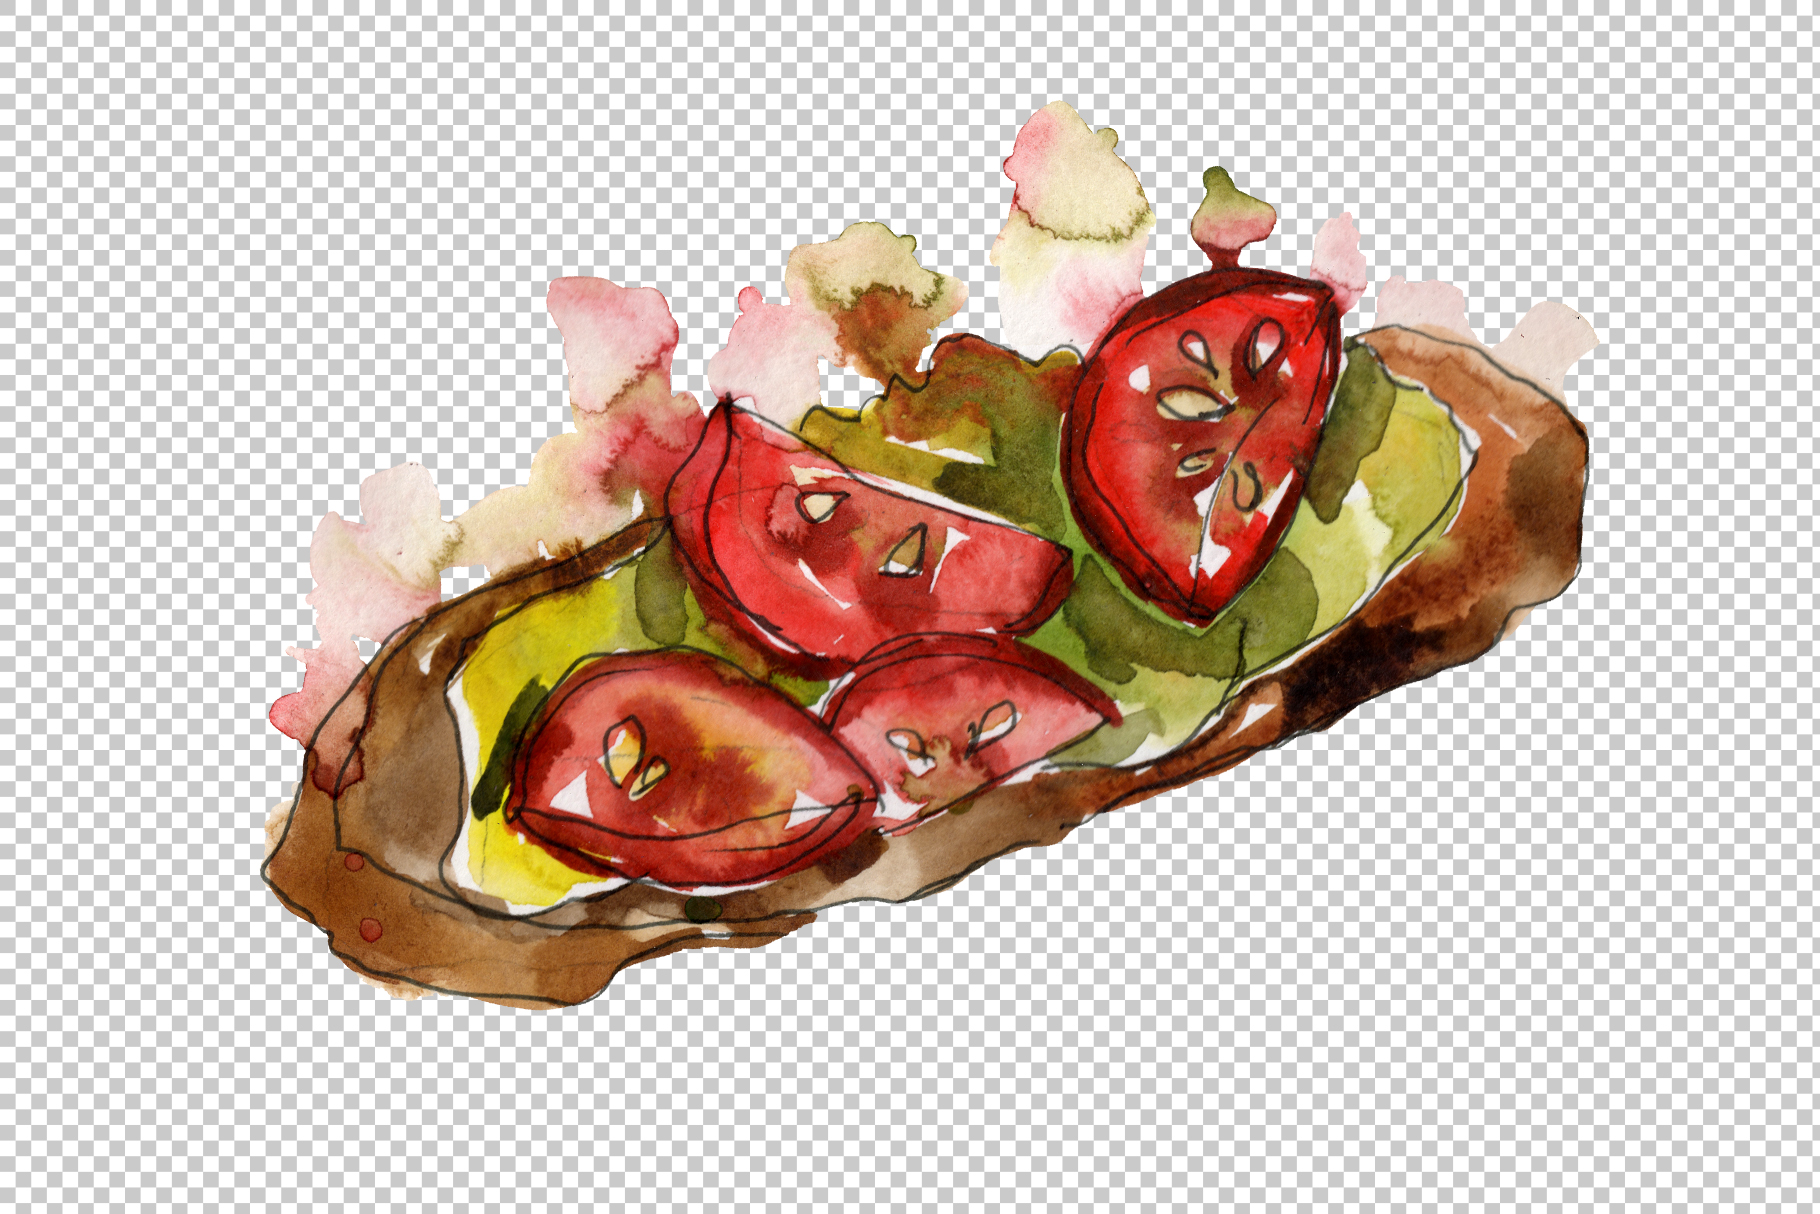 Sandwich sausage Watercolor png example image 5